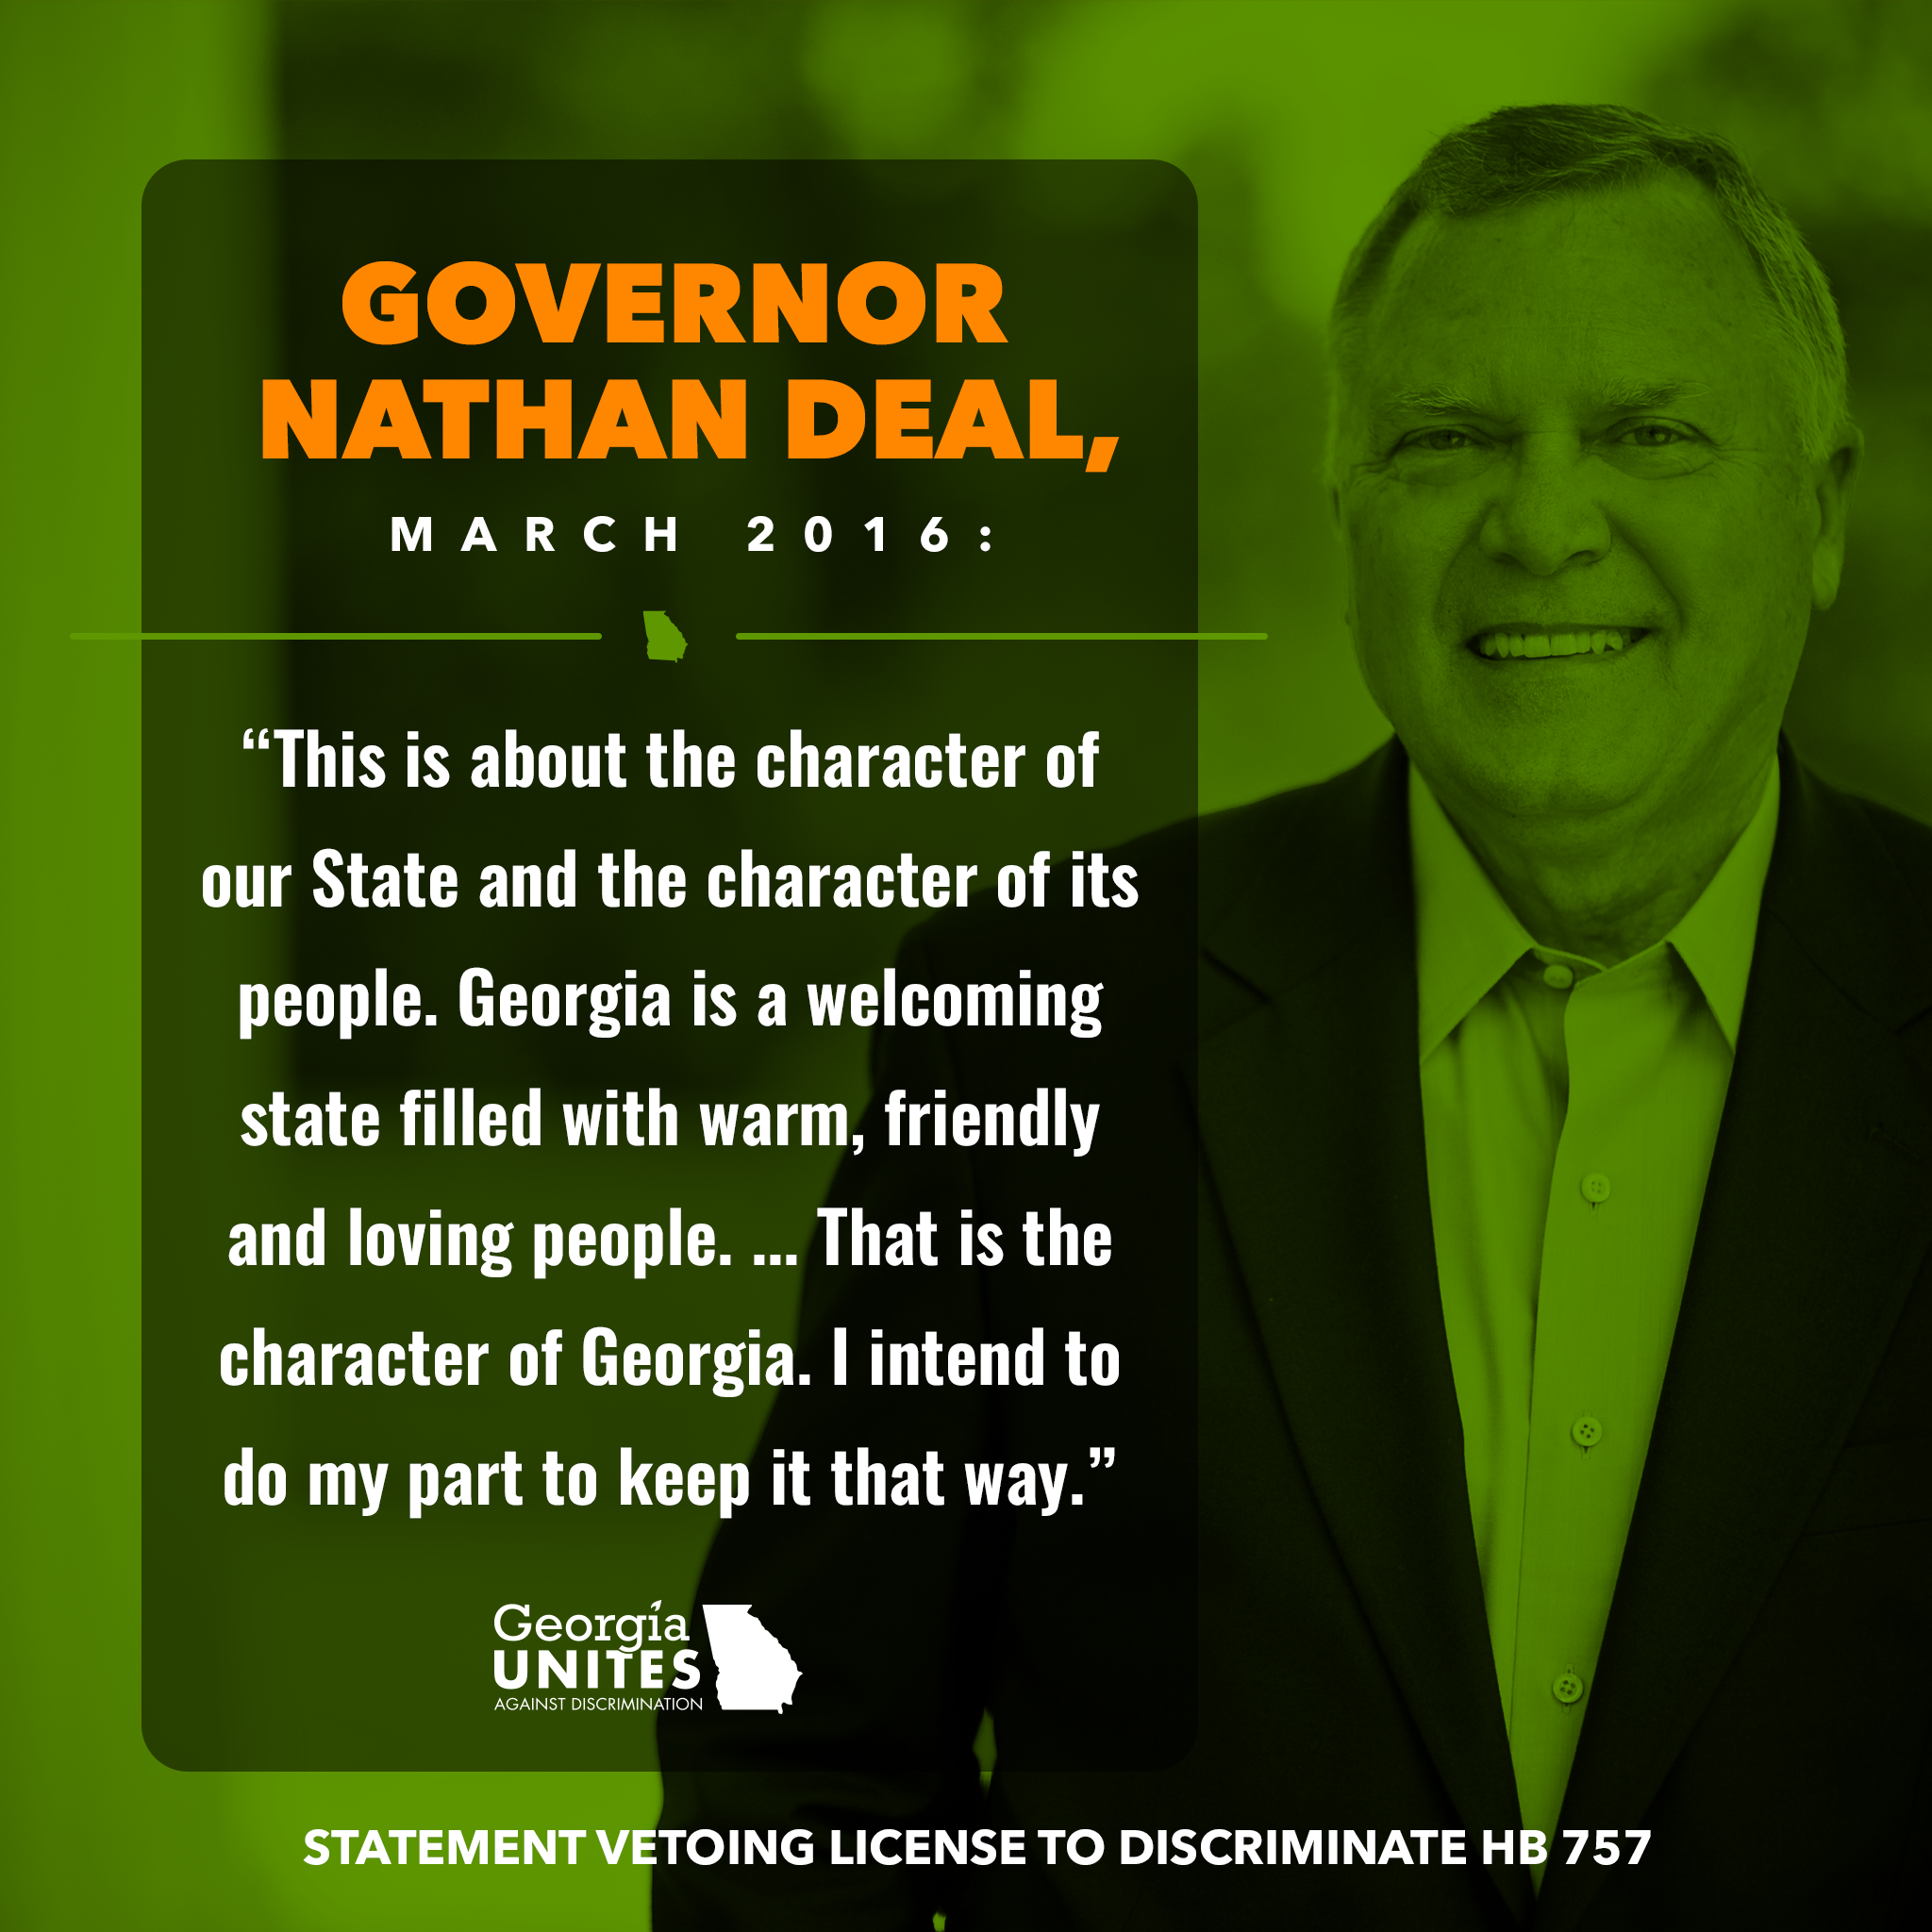 As Gov. Deal Leaves Office, Another 'Thank You' for Vetoing Notorious License to Discriminate